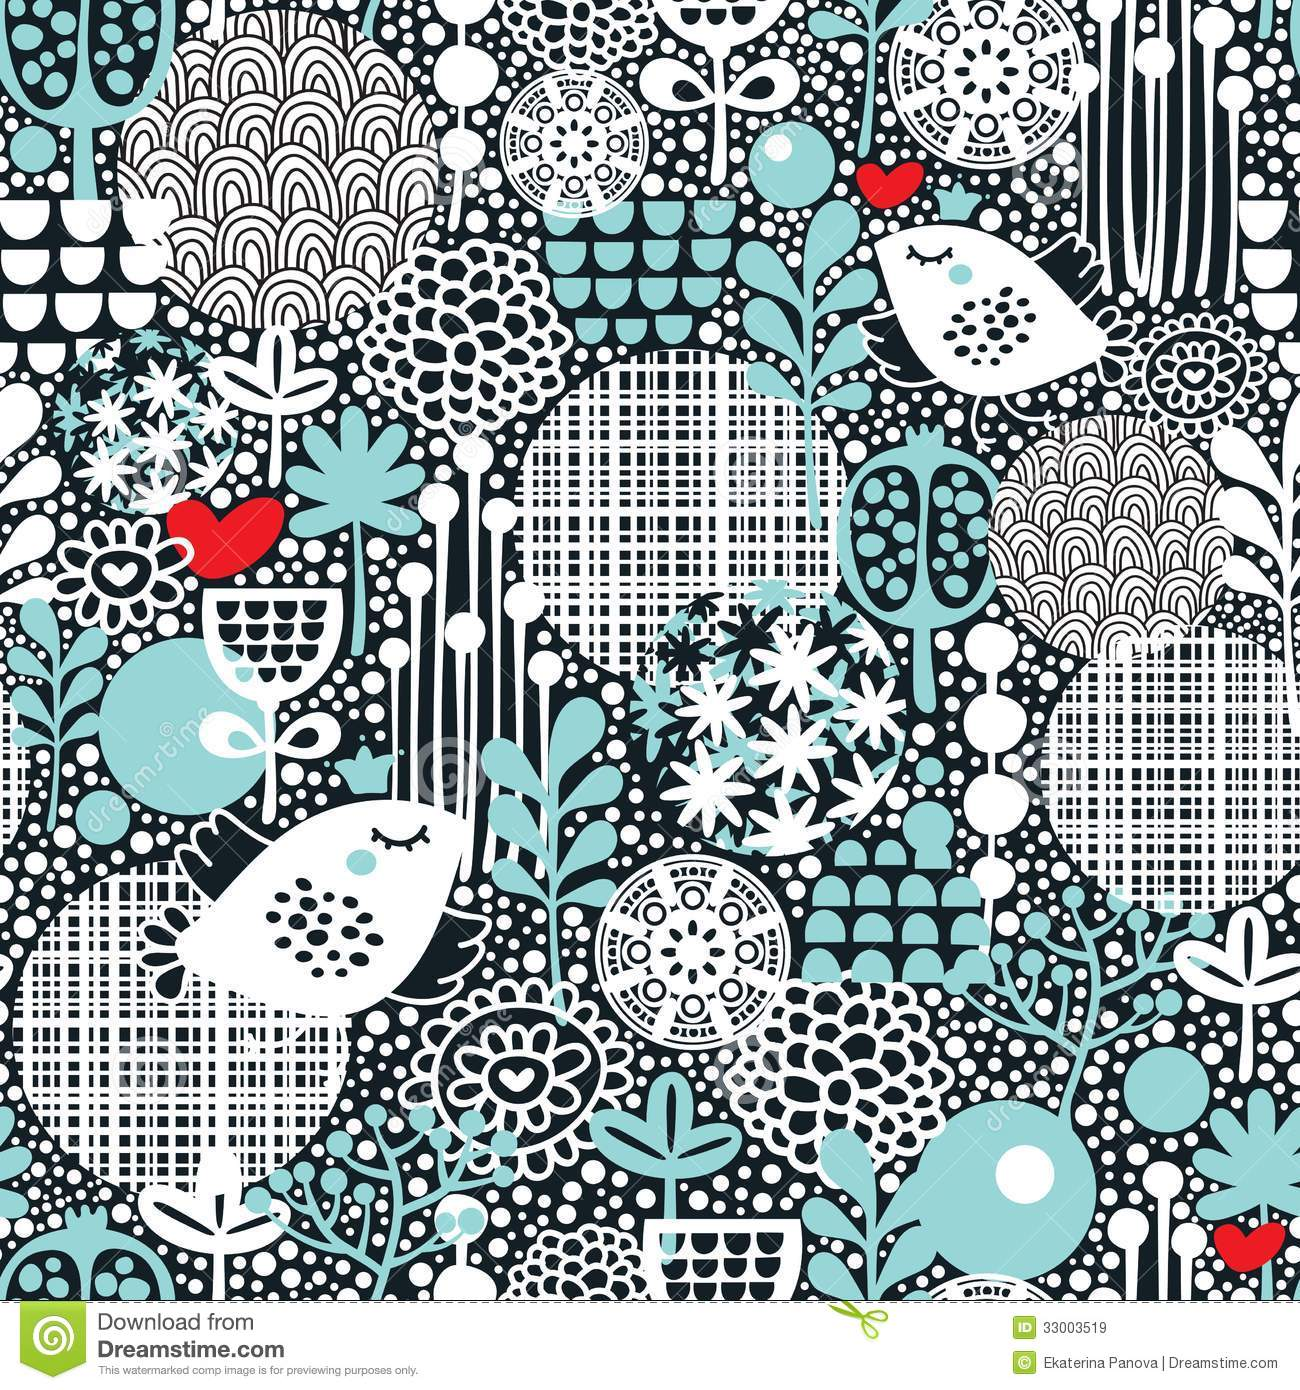 Pattern with snow birds, hearts and flowers.